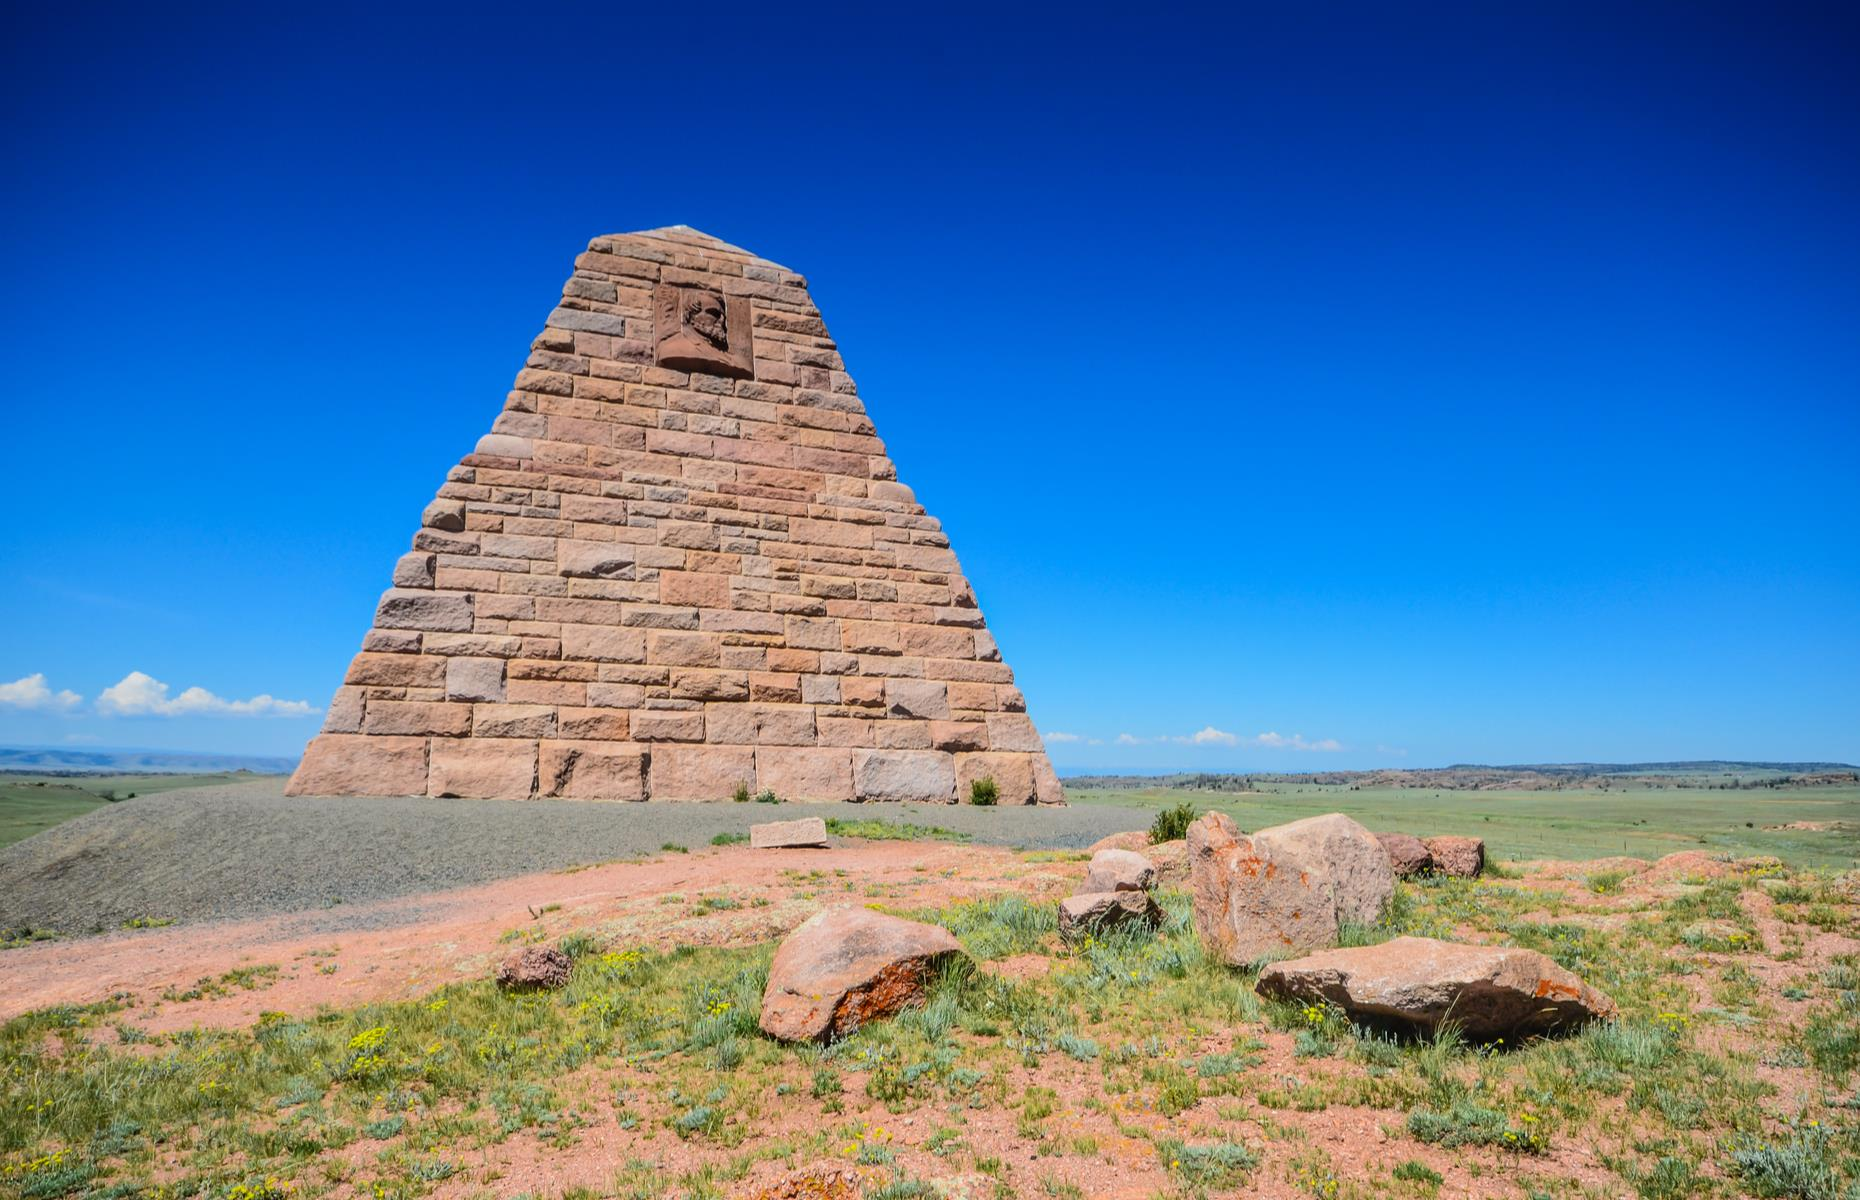 Slide 28 of 31: While the Ames Monument may look like something from ancient Egypt, this four-sided, granite pyramid was actually constructed in 1881 by architect Henry Hobson Richardson. Located east of Laramie, it once marked the highest point on the Union Pacific Railroad, before the tracks were moved in 1901. The monument was erected to honor brothers Oliver and Oakes Ames, important leaders of the railroad's construction. The pyramid's base is 60-feet (18m) wide and it's 60-feet tall.